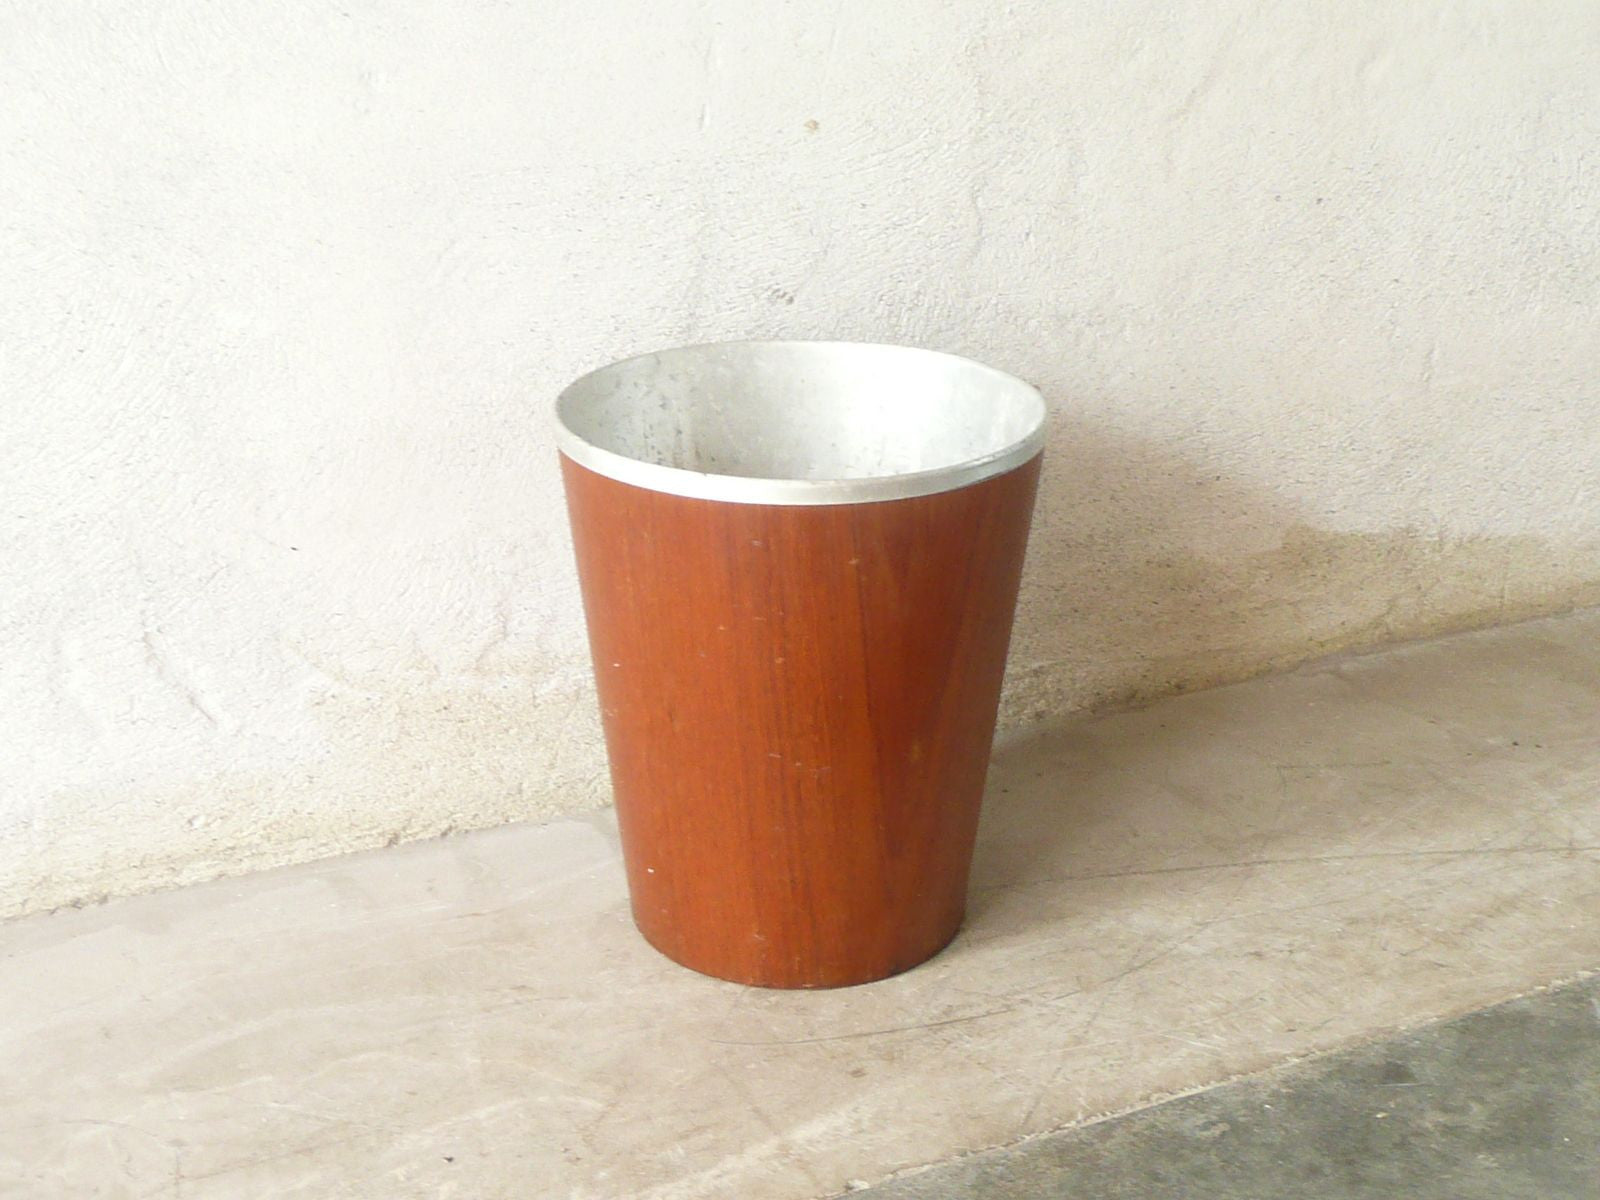 Teak waste basket